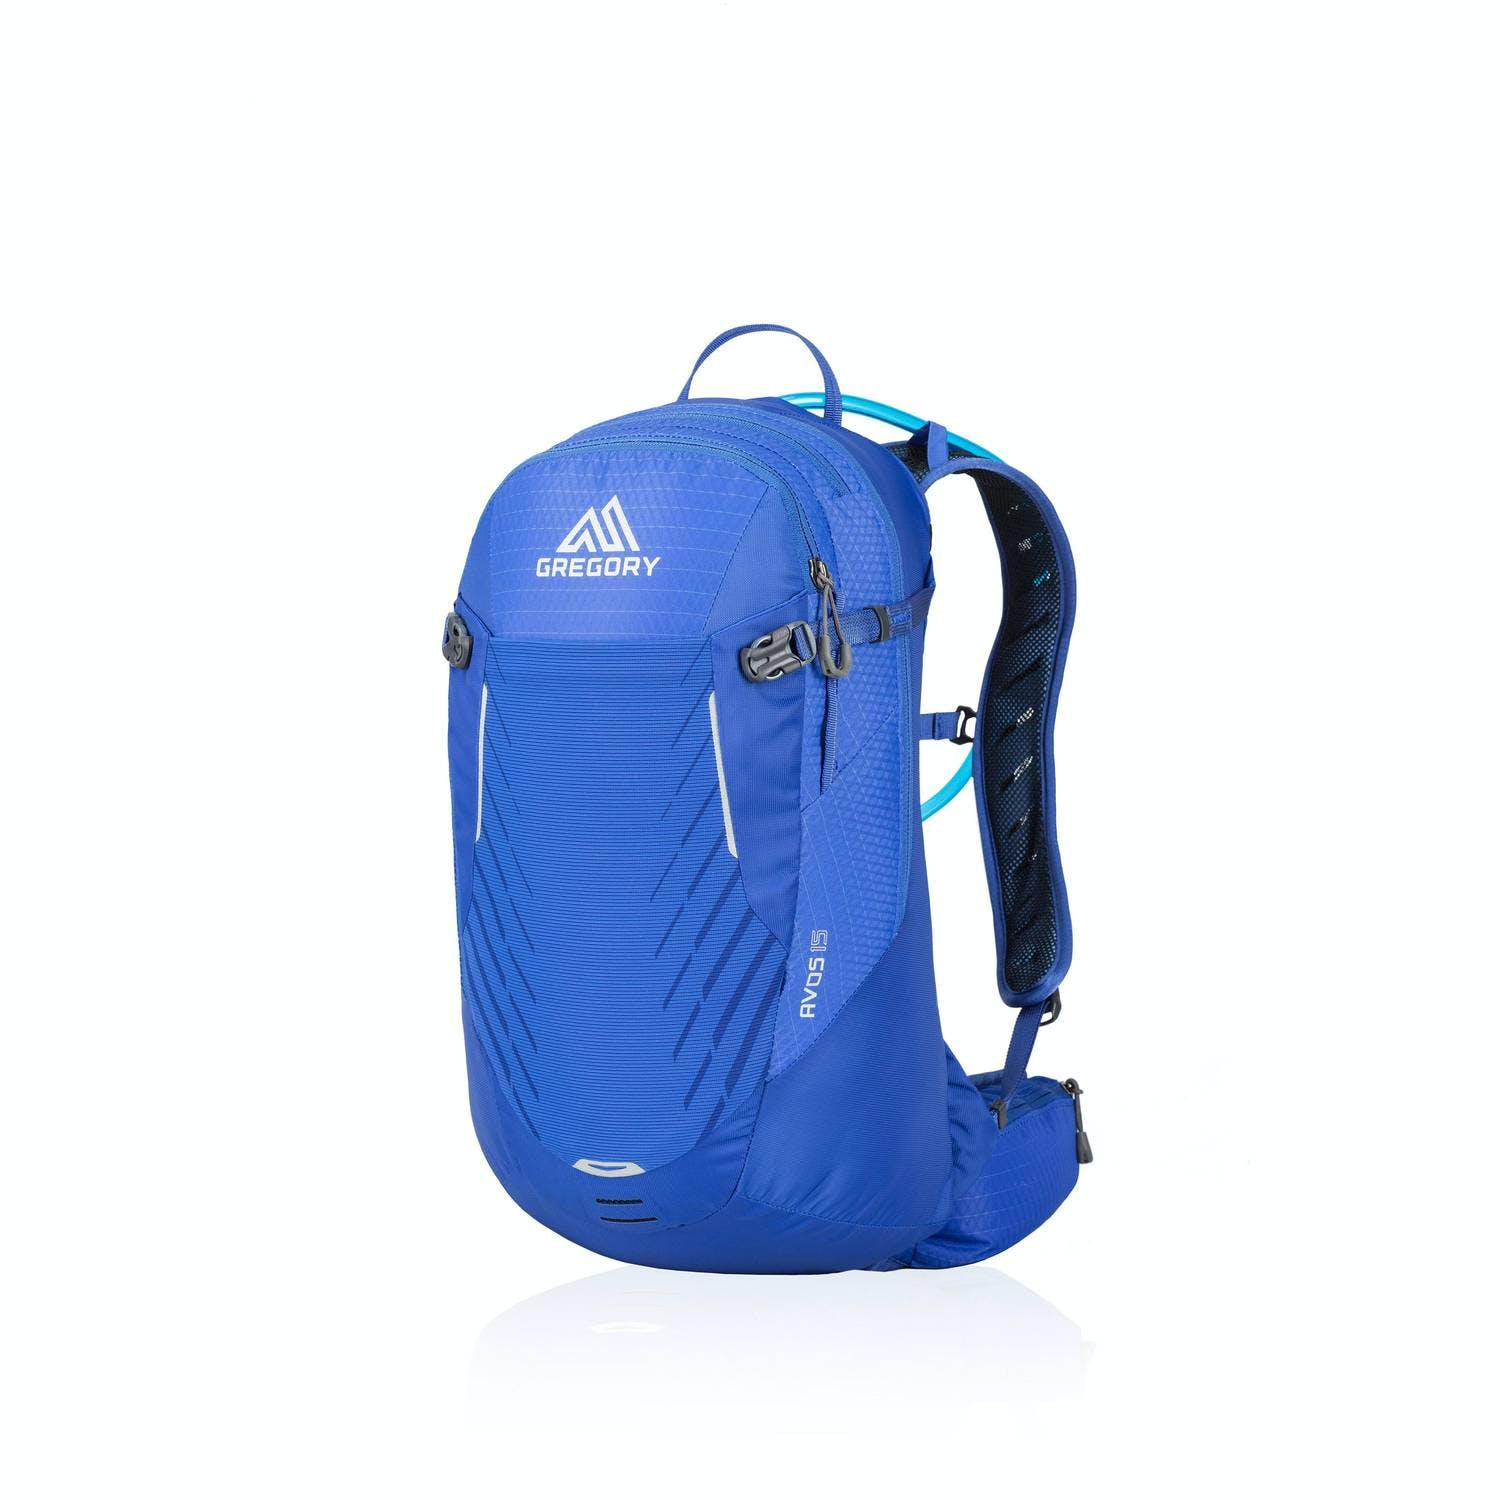 Gregory - Avos 15 Hydration Pack - Riviera Blue